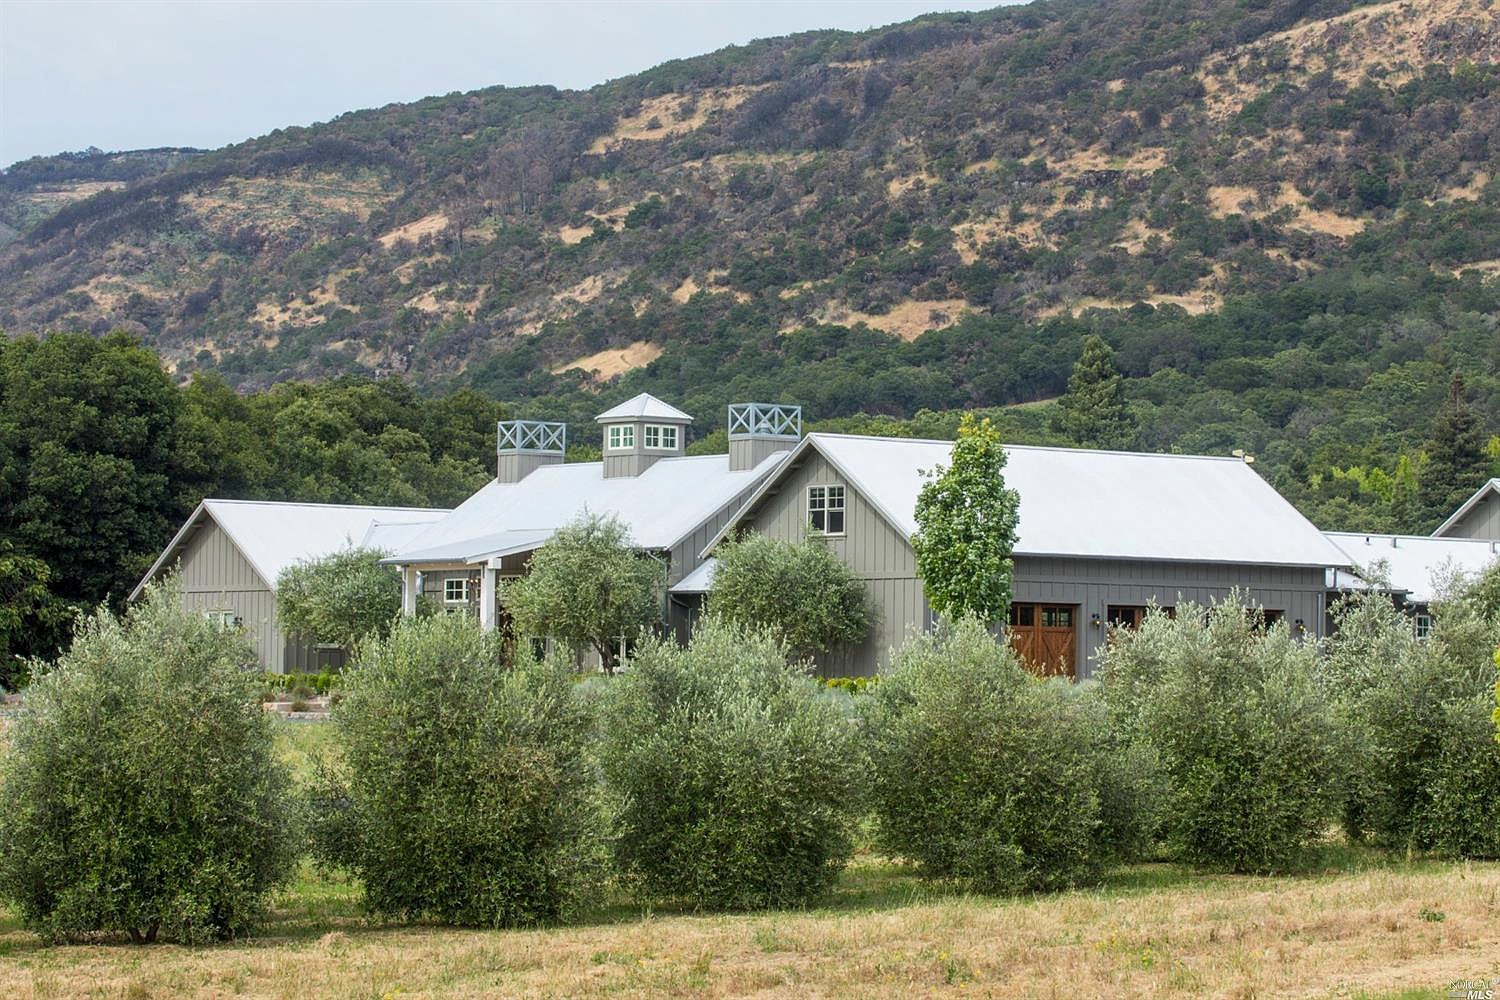 4128 E 3rd Ave, Napa, CA 94558 - $6,950,000 home for sale, house images, photos and pics gallery